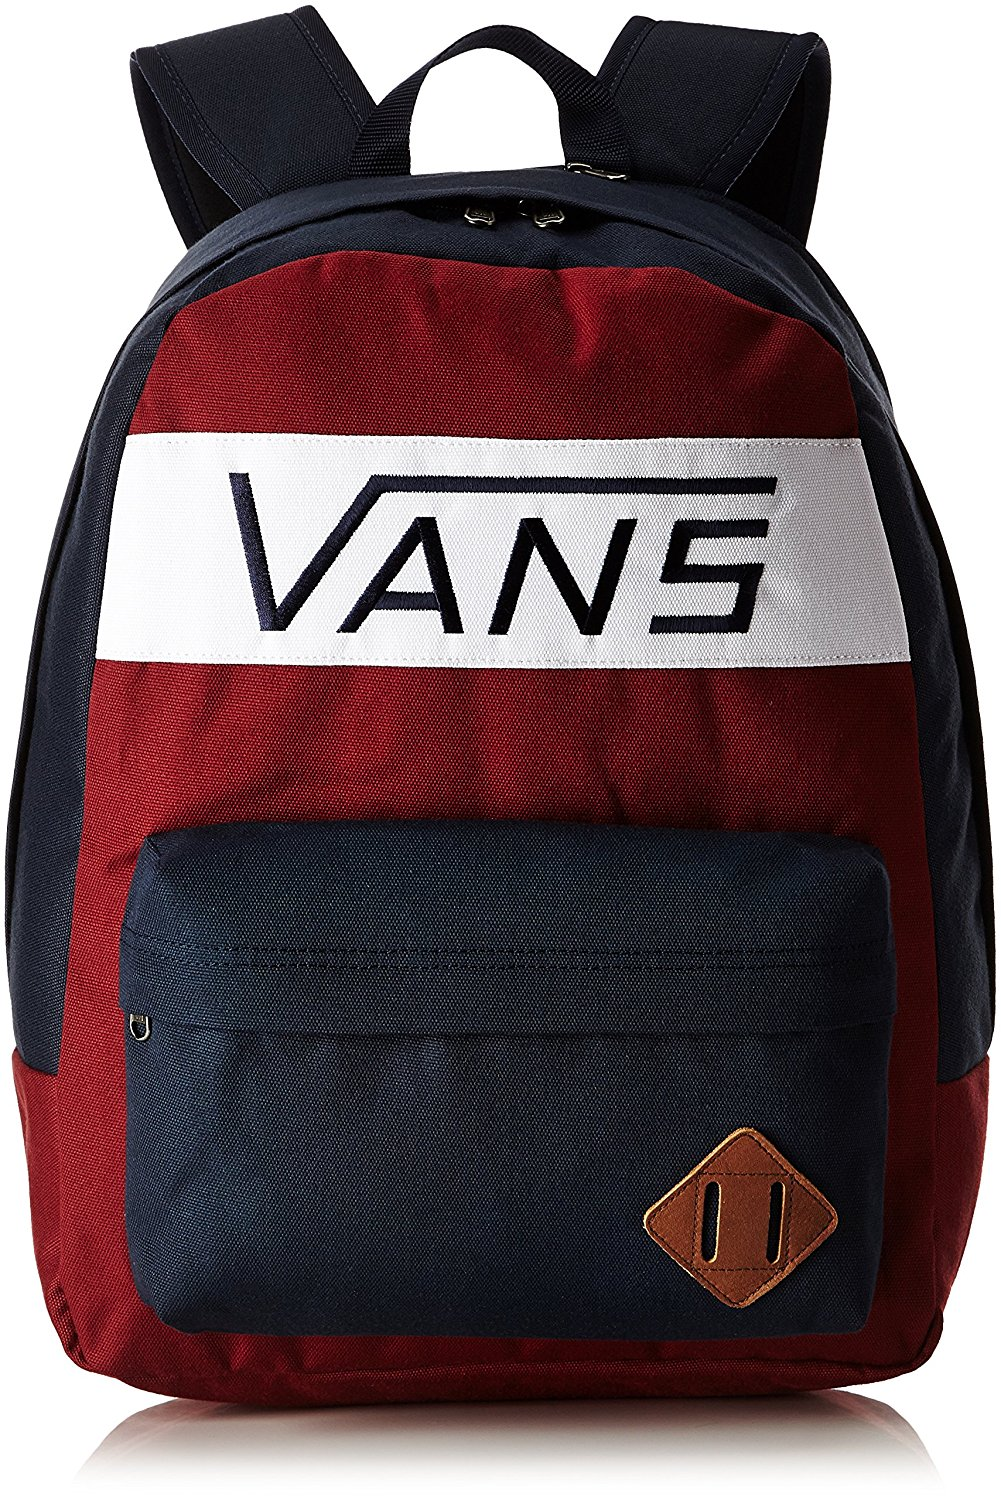 Vans mens OLD SKOOL PLUS BACKPACK VN-02TM